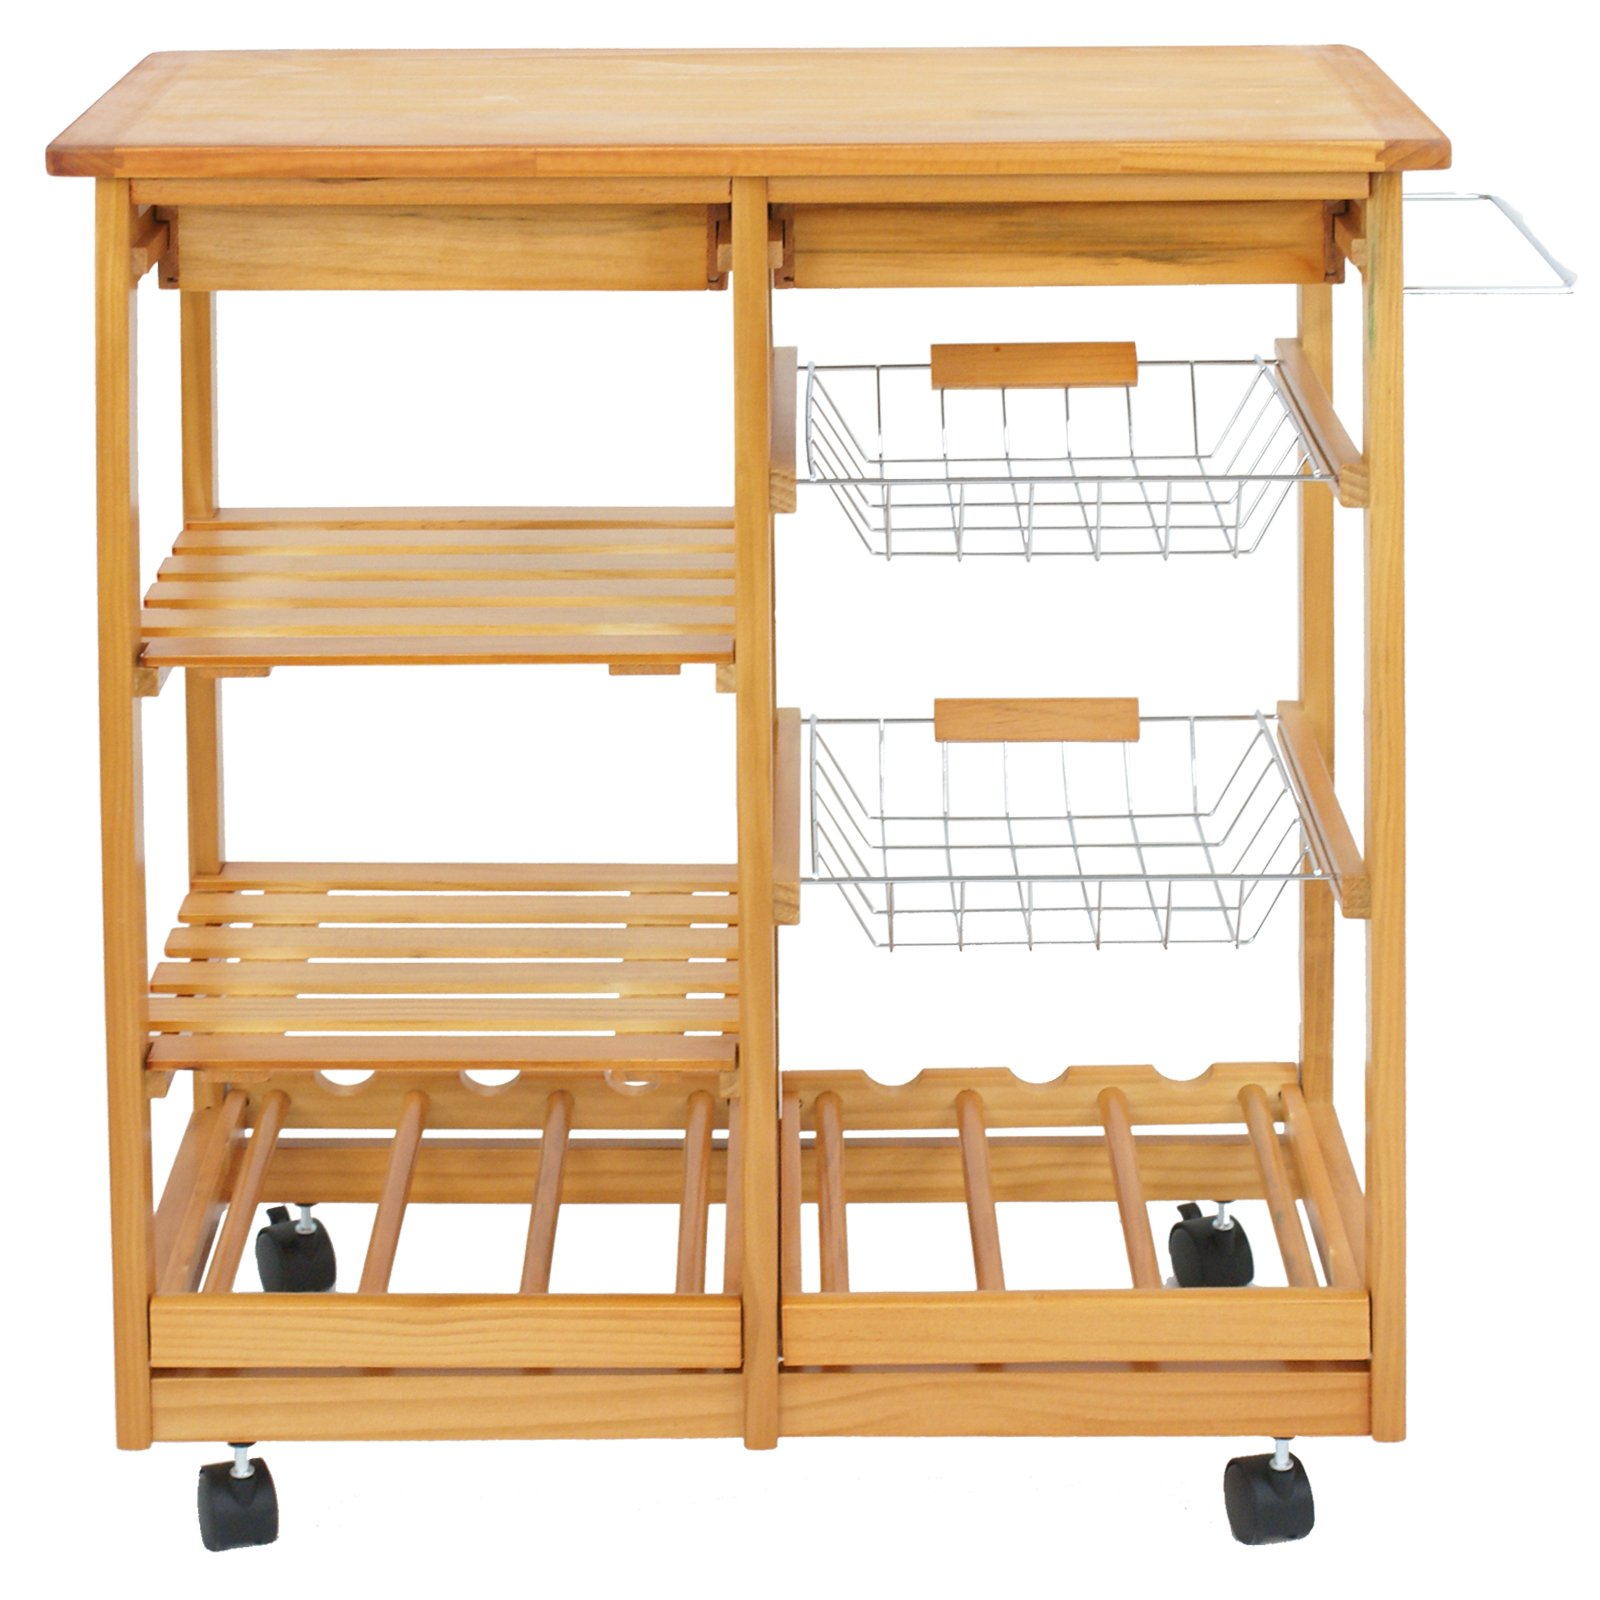 SUPER DEAL Multi-Purpose Wood Rolling Kitchen Island Trolley w/Drawer Shelves Basket by SUPER DEAL (Image #3)